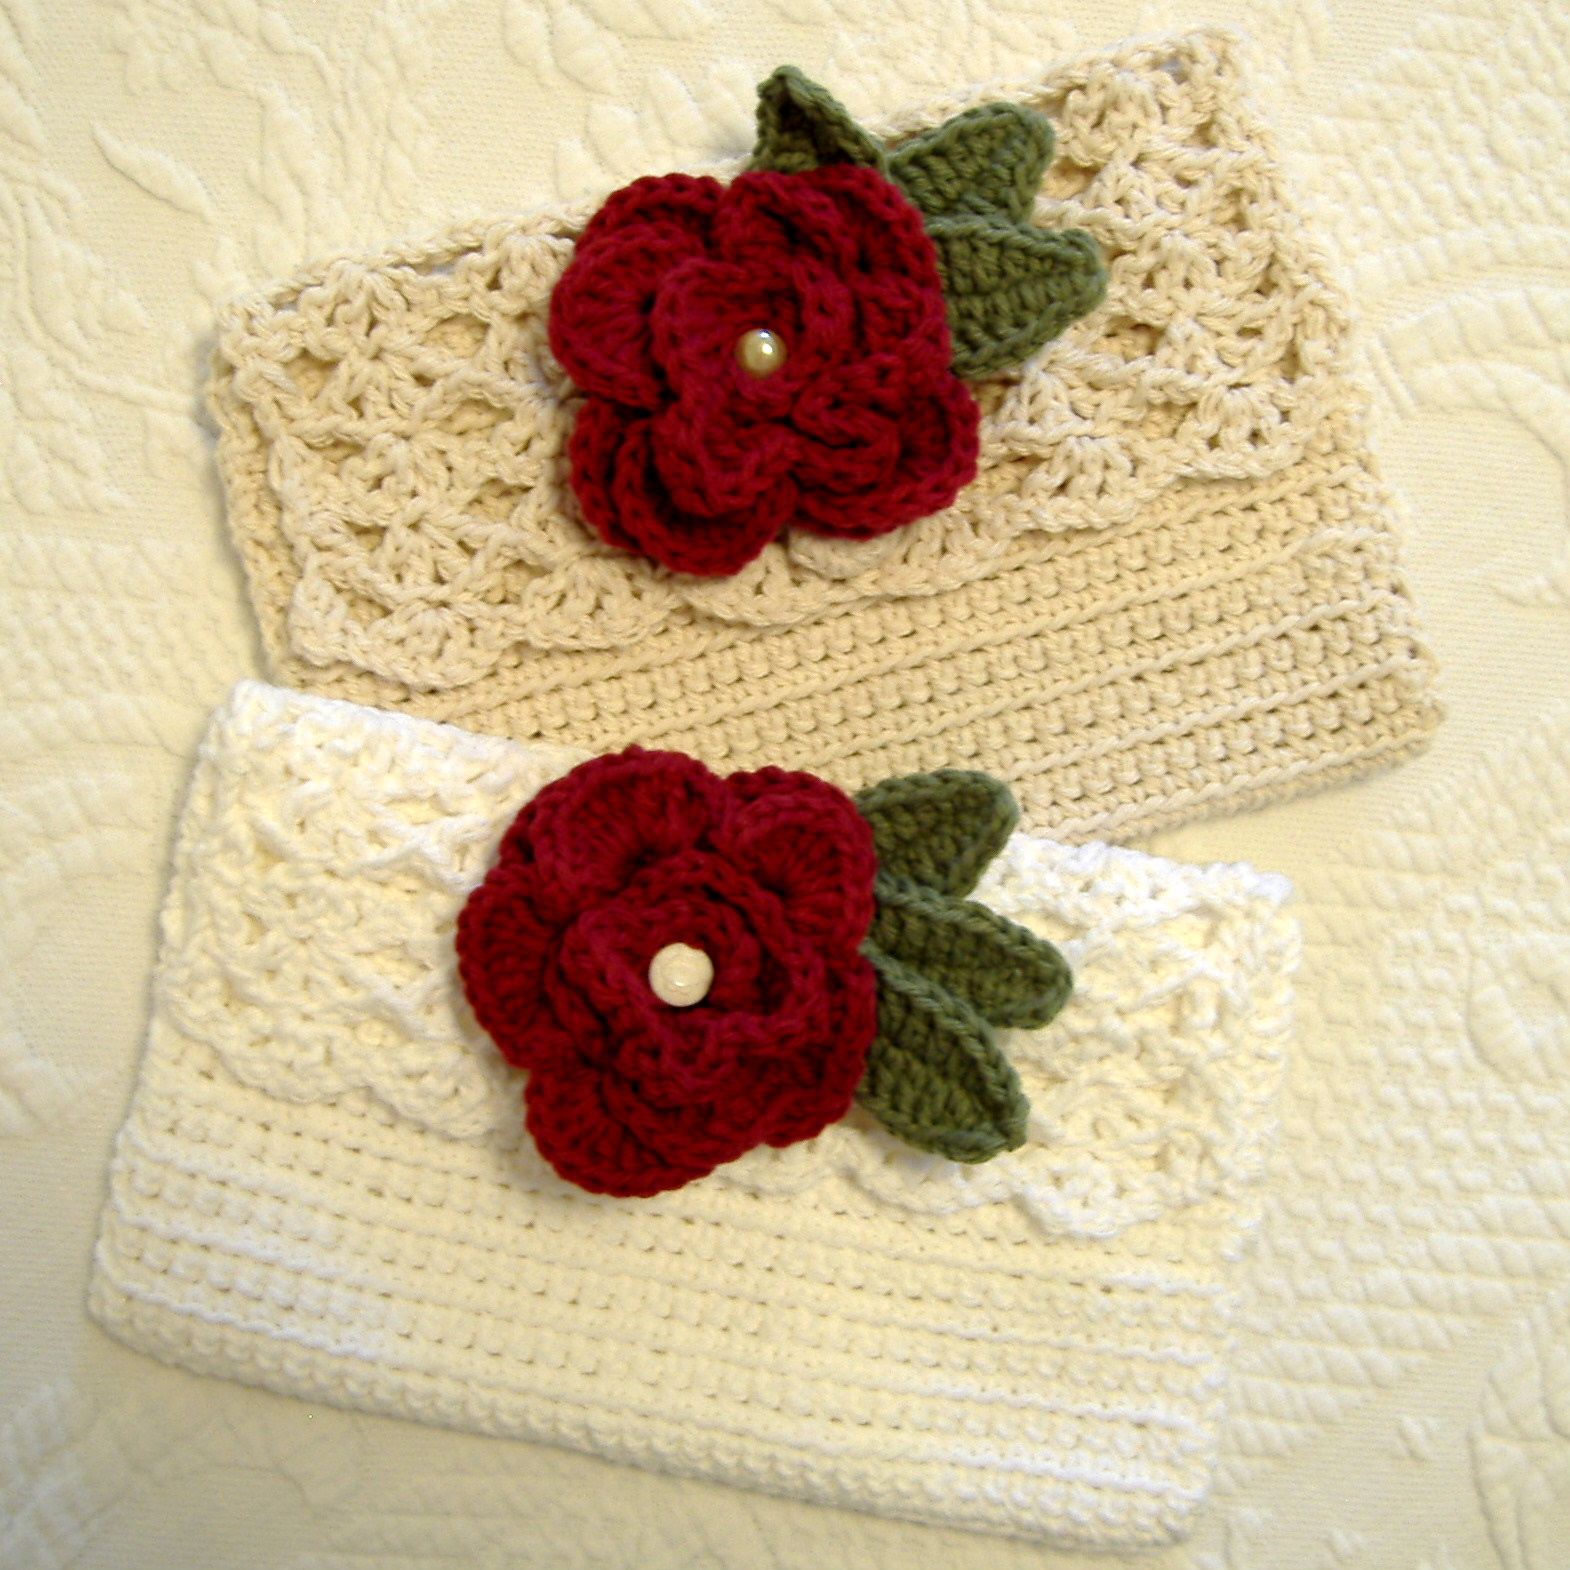 Free Crochet Patterns For Bags And Totes : CROCHET PATTERNS PURSES ? Patterns